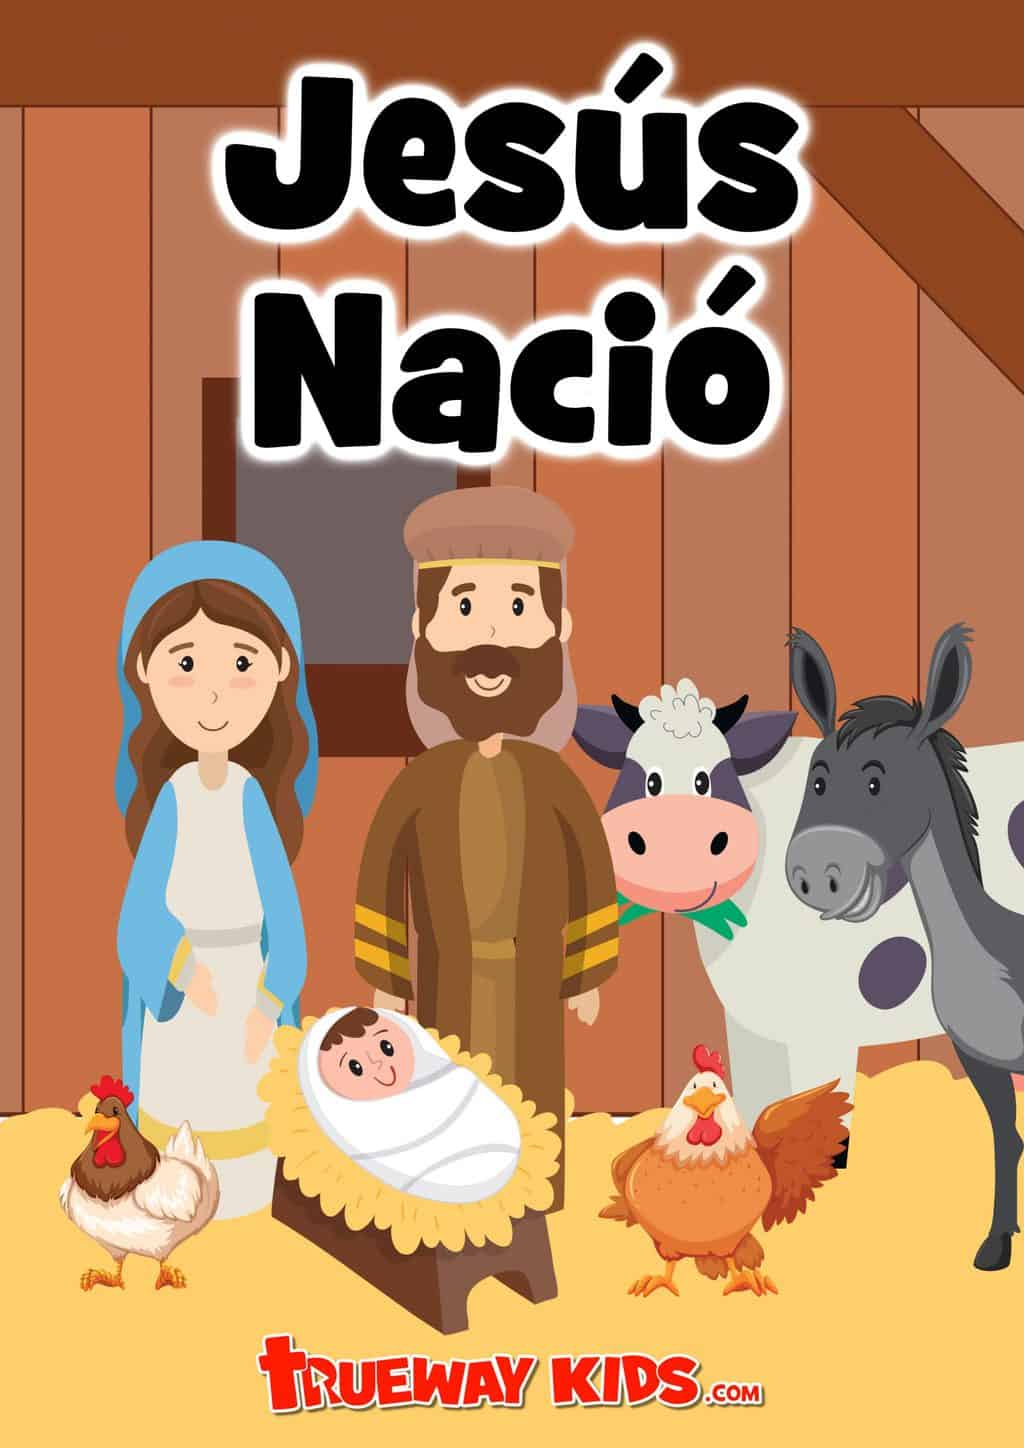 Jesus is born. Free printable Bible lesson for preschool children. Learn about the trip to Bethlehem and no place to stay. Luke 2. Includes worksheets, coloring pages, Bible games and activities and Christmas worship ideas, easy kids crafts and more.